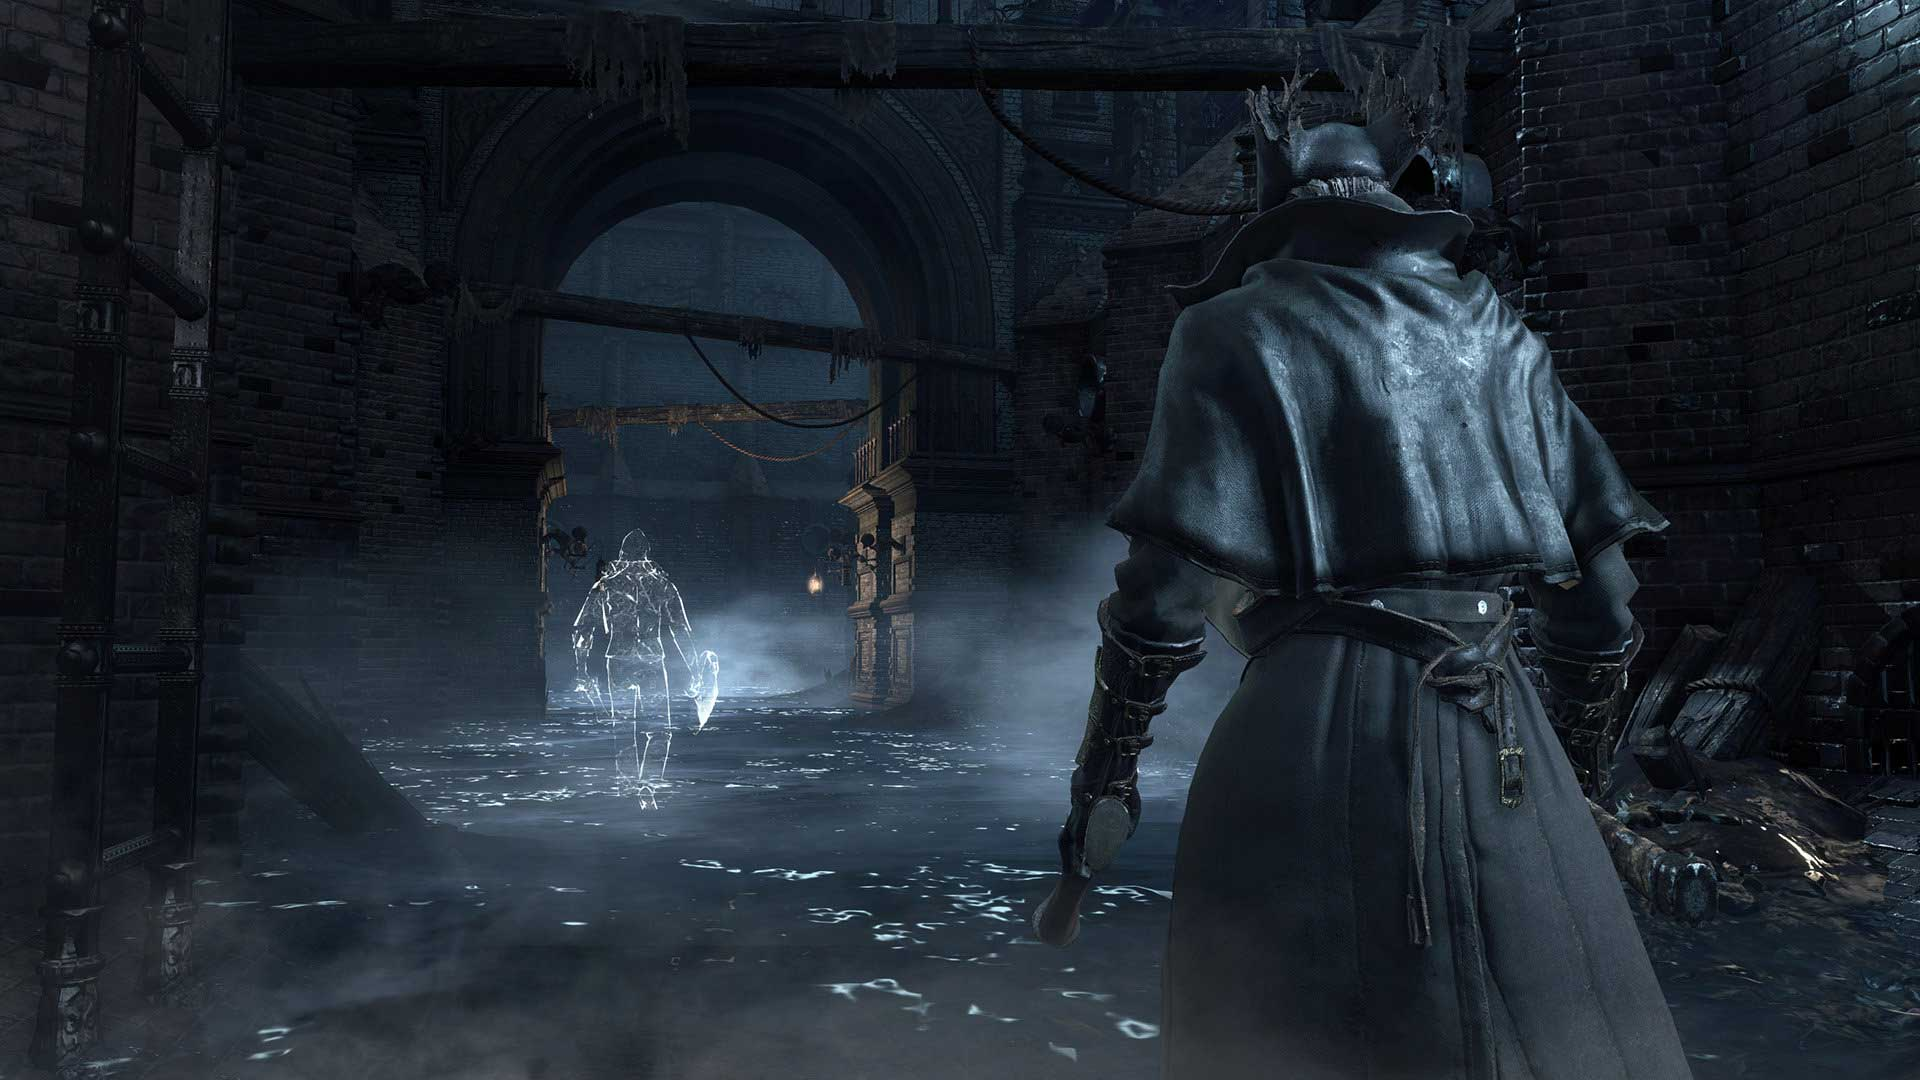 bloodborne_multiplayer_pvp_co-op_network_features_7